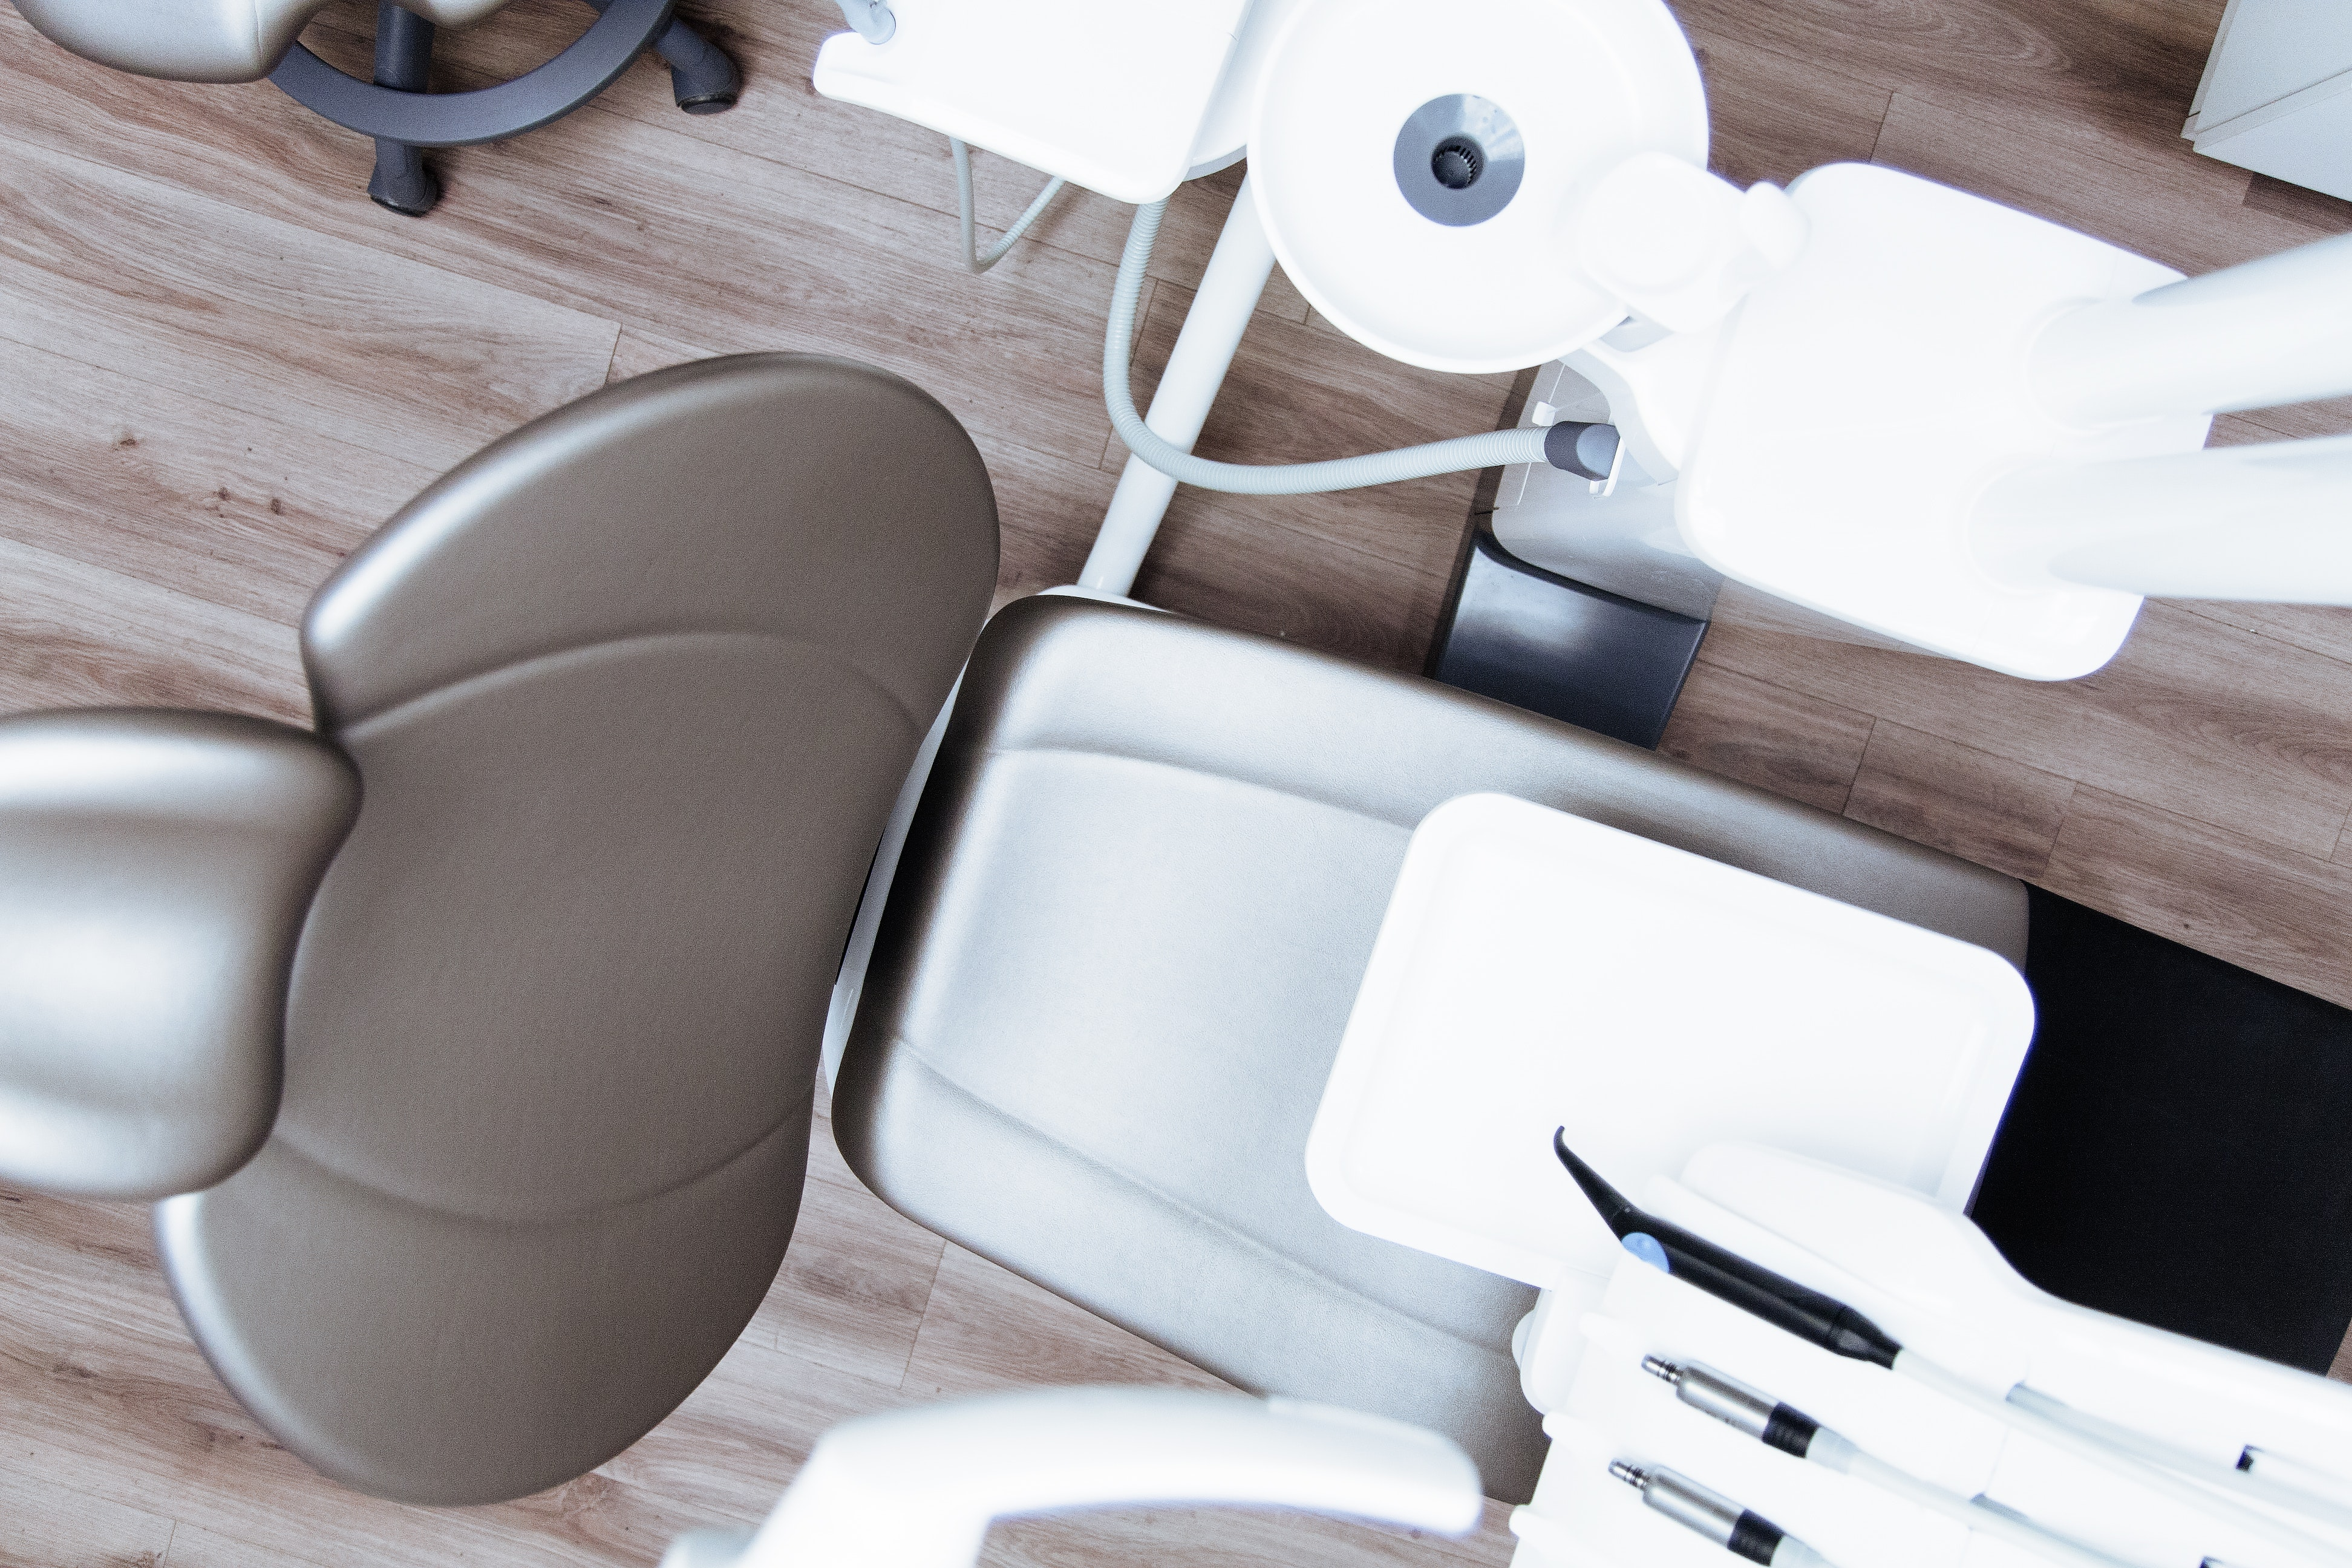 Dentist's chair empty and ready for a patient.